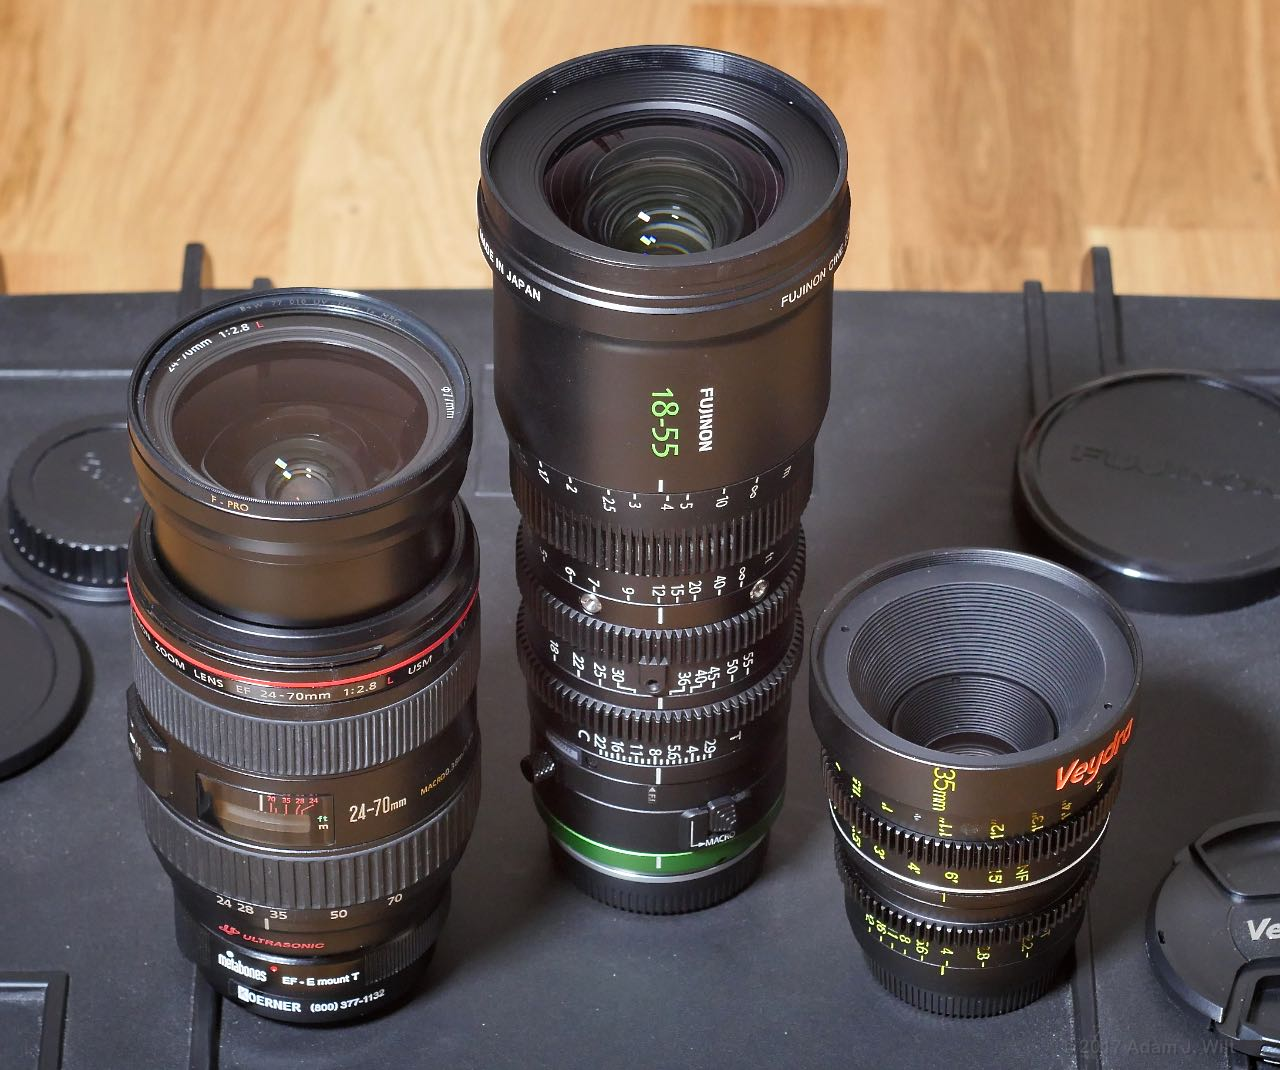 Three lenses compared